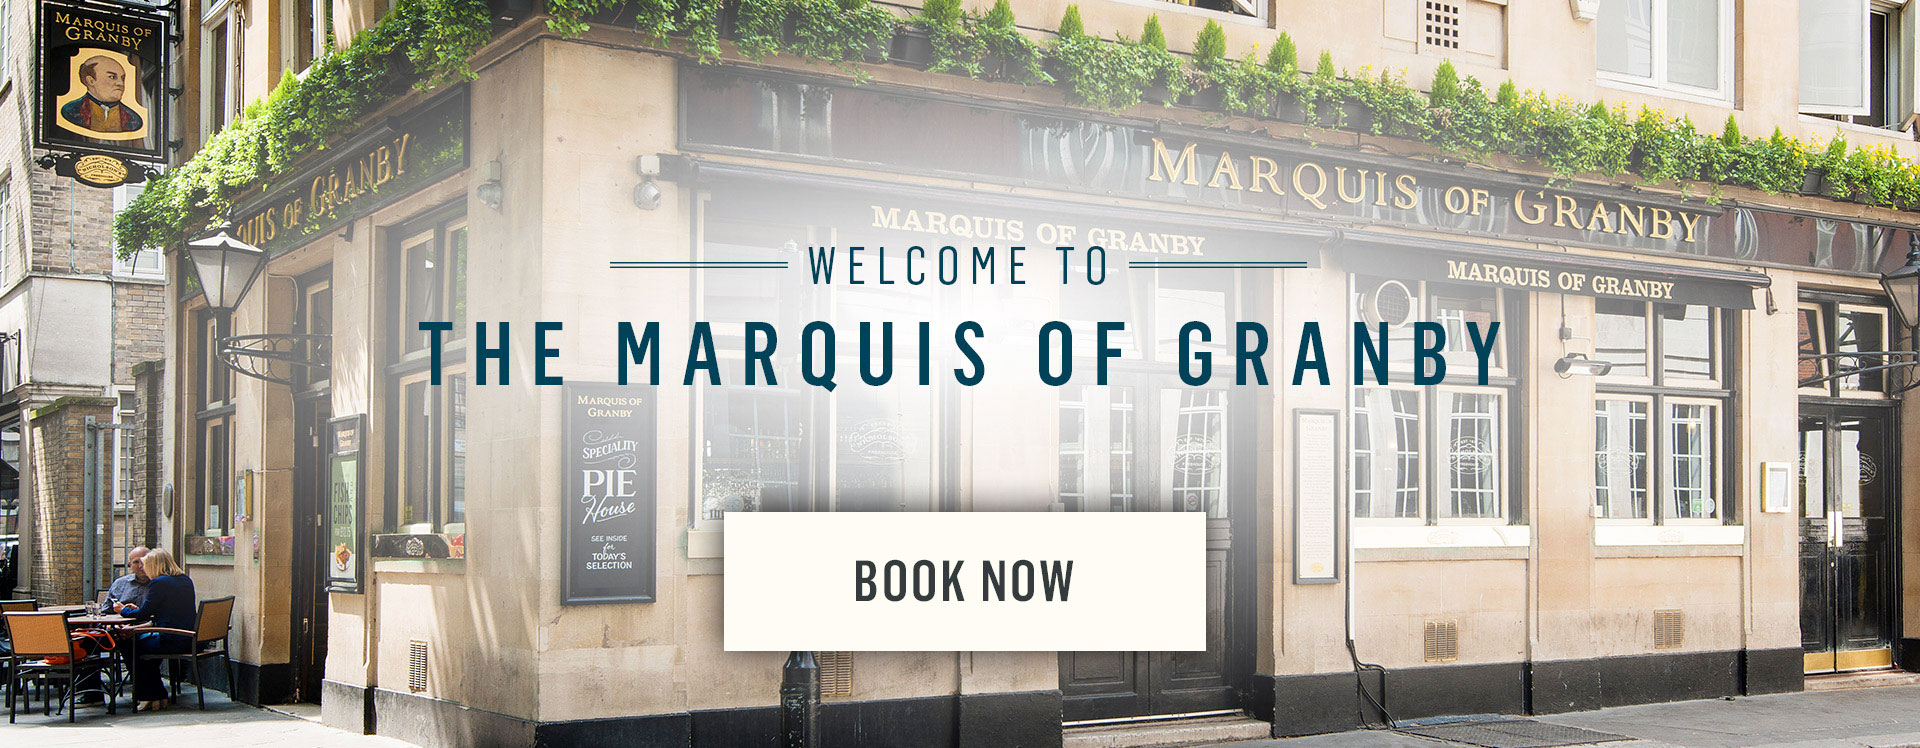 Welcome to The Marquis of Granby - Book Now